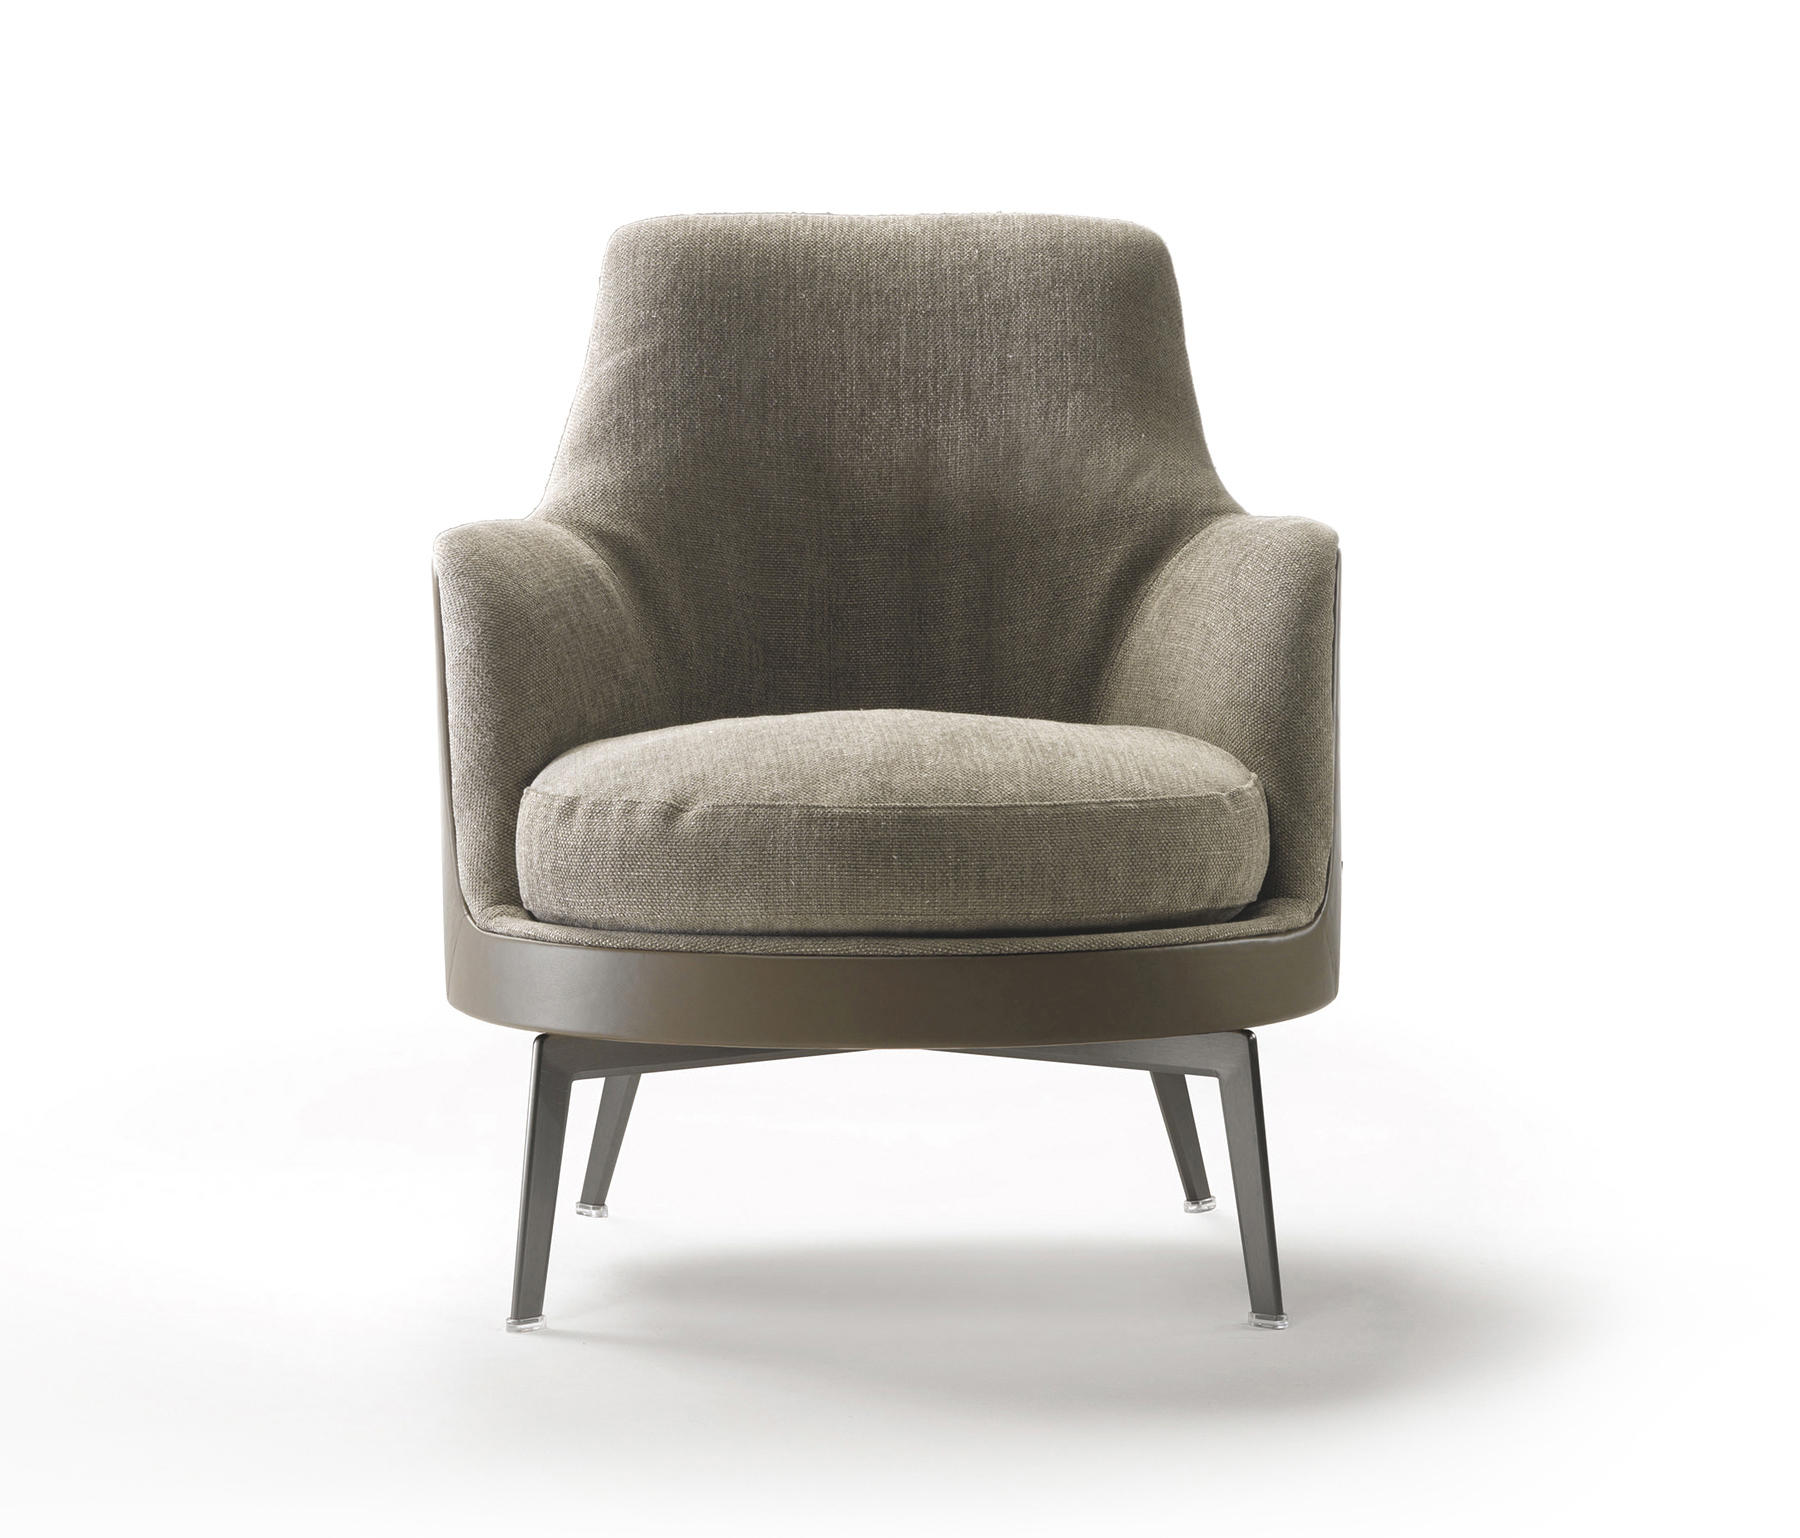 Guscio soft armchair lounge chairs from flexform for Armchair furniture